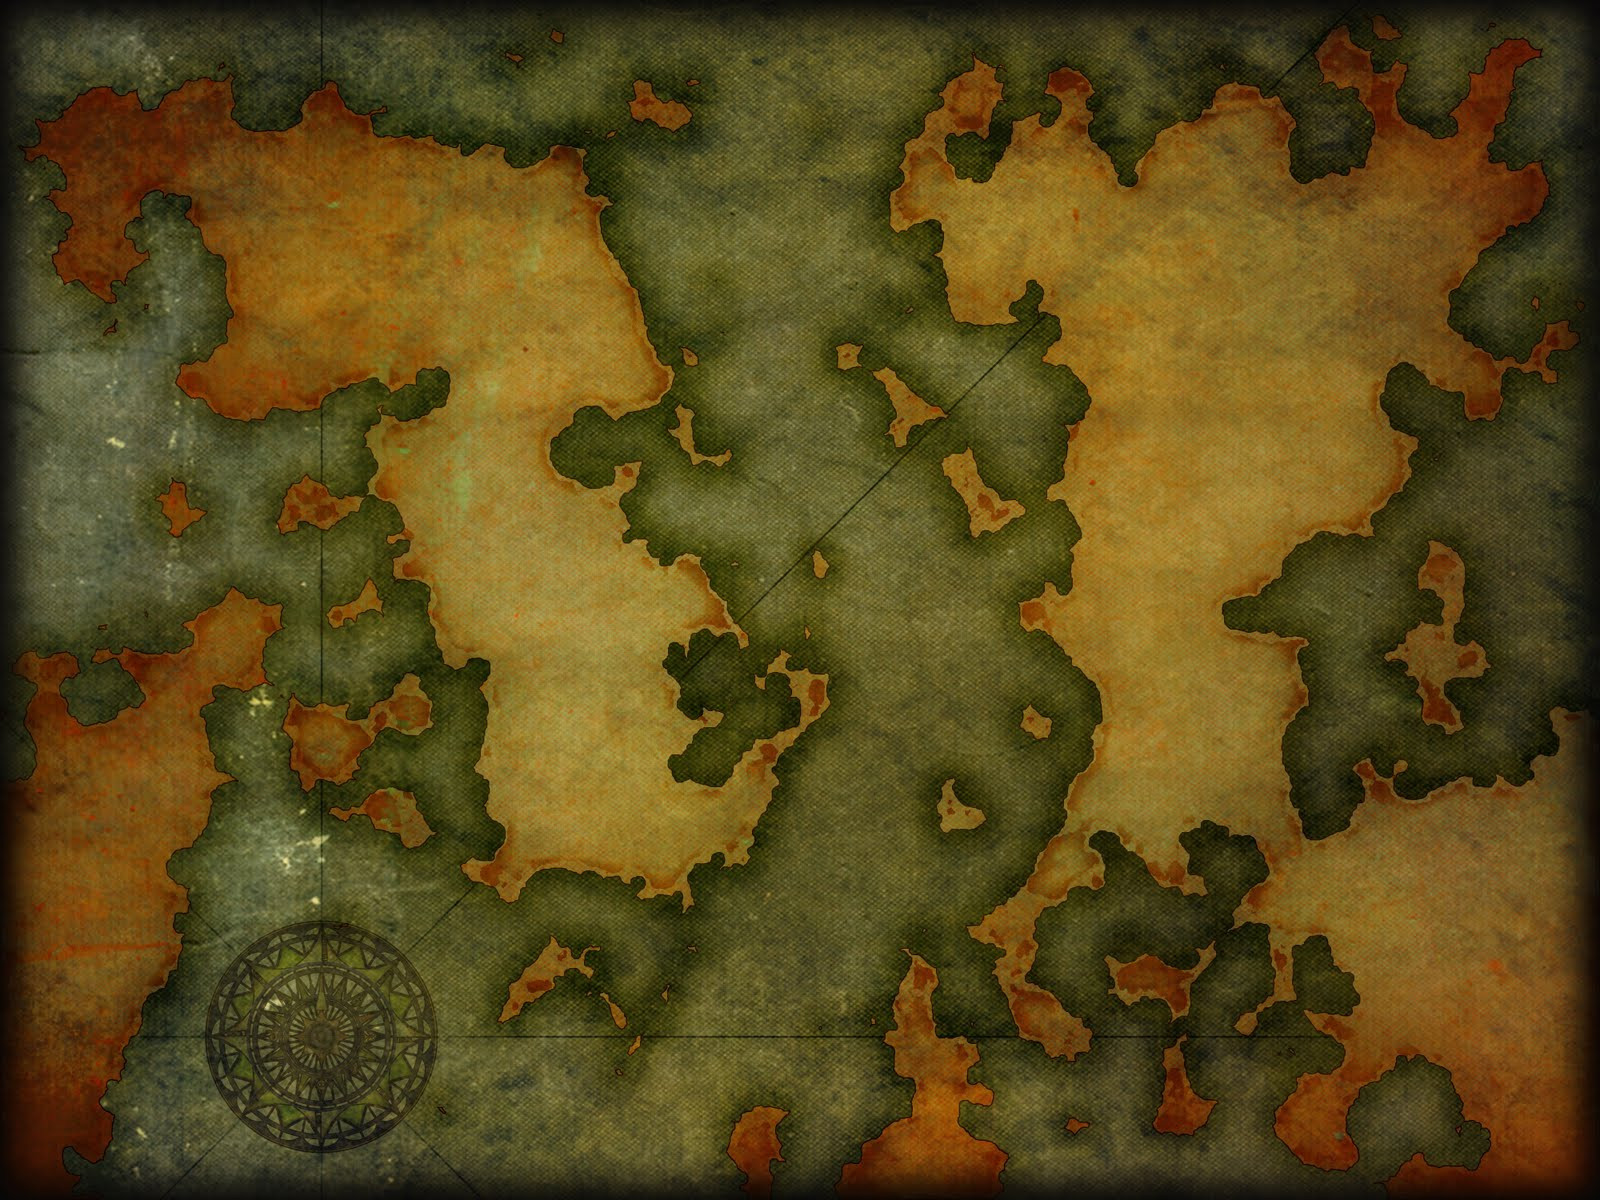 Monday Map Another Free Blank Map The Labyrinth - Free blank maps